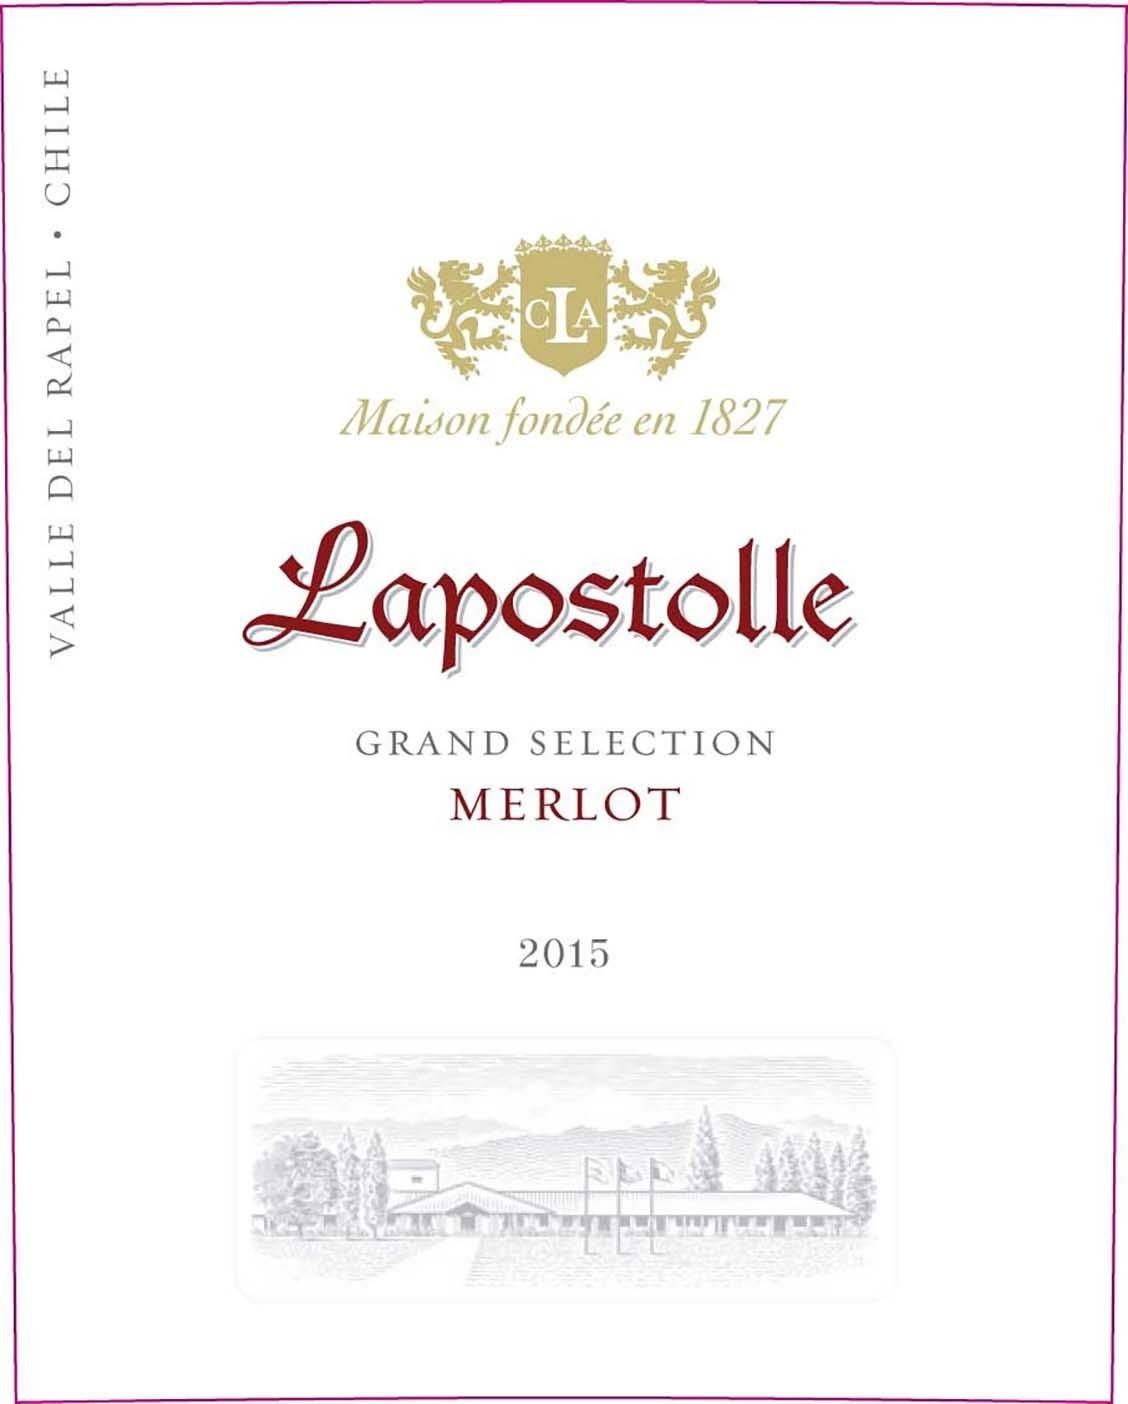 Lapostolle Grand Selection Merlot 2015 Front Label